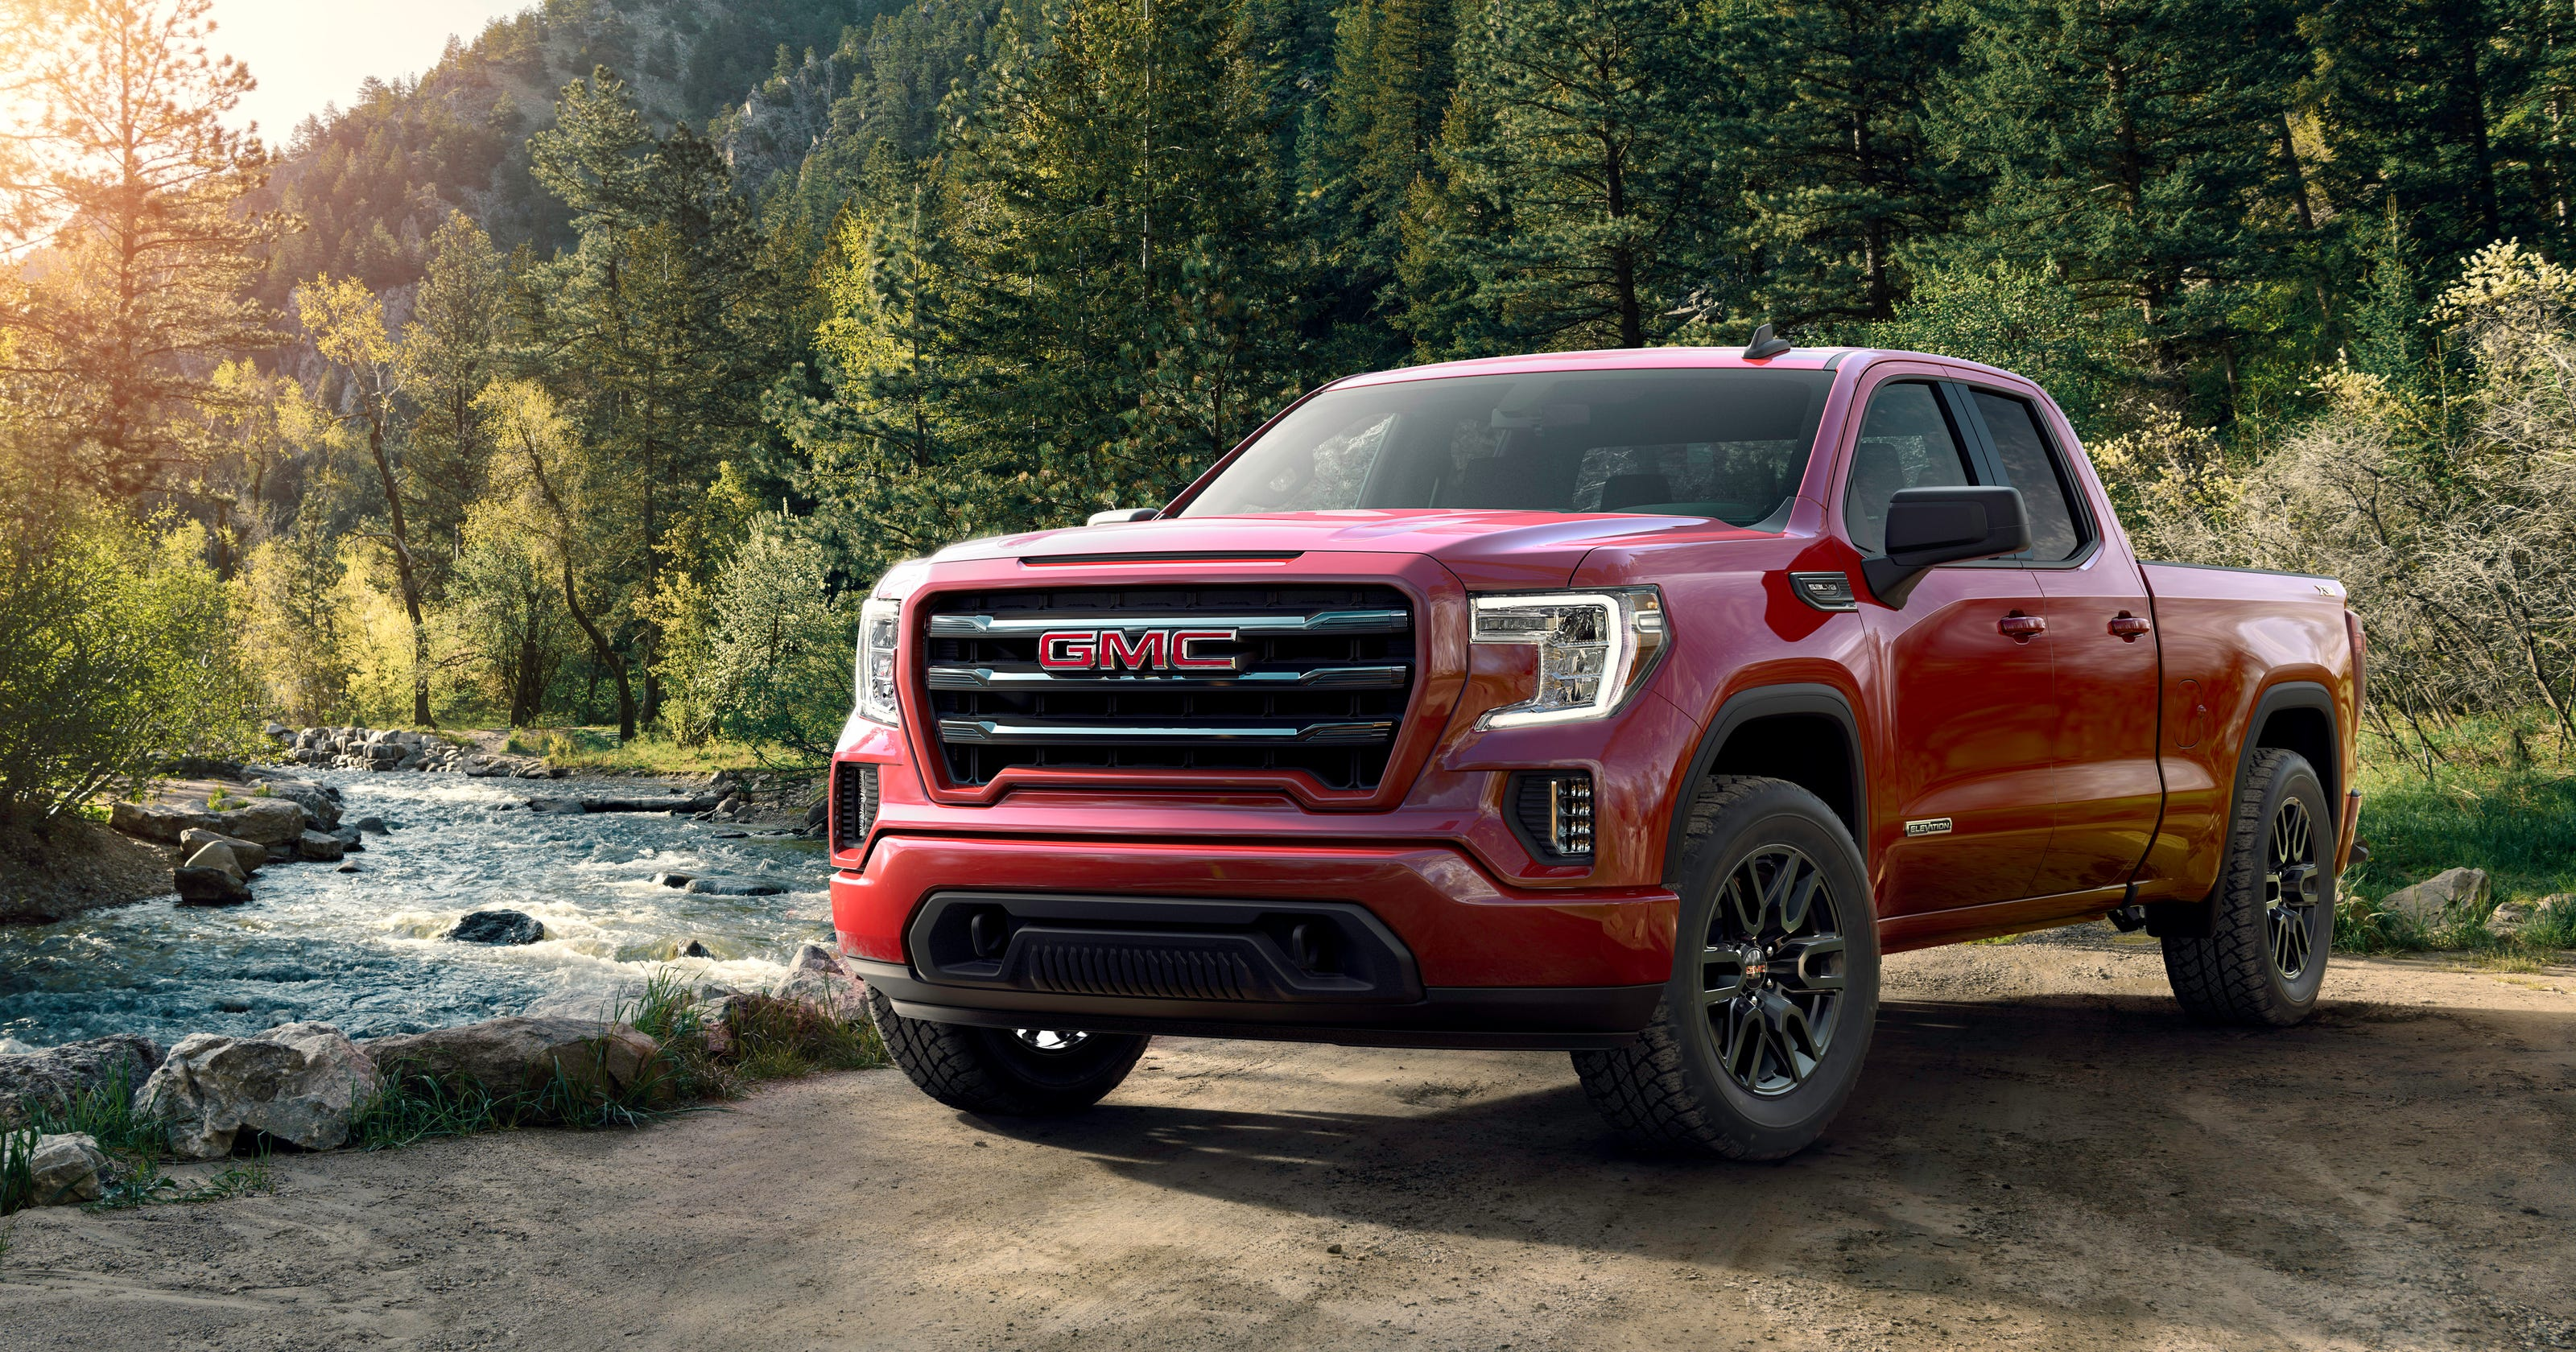 Gmc Adds A Tricked Out Truck To Its 2019 Sierra Lineup